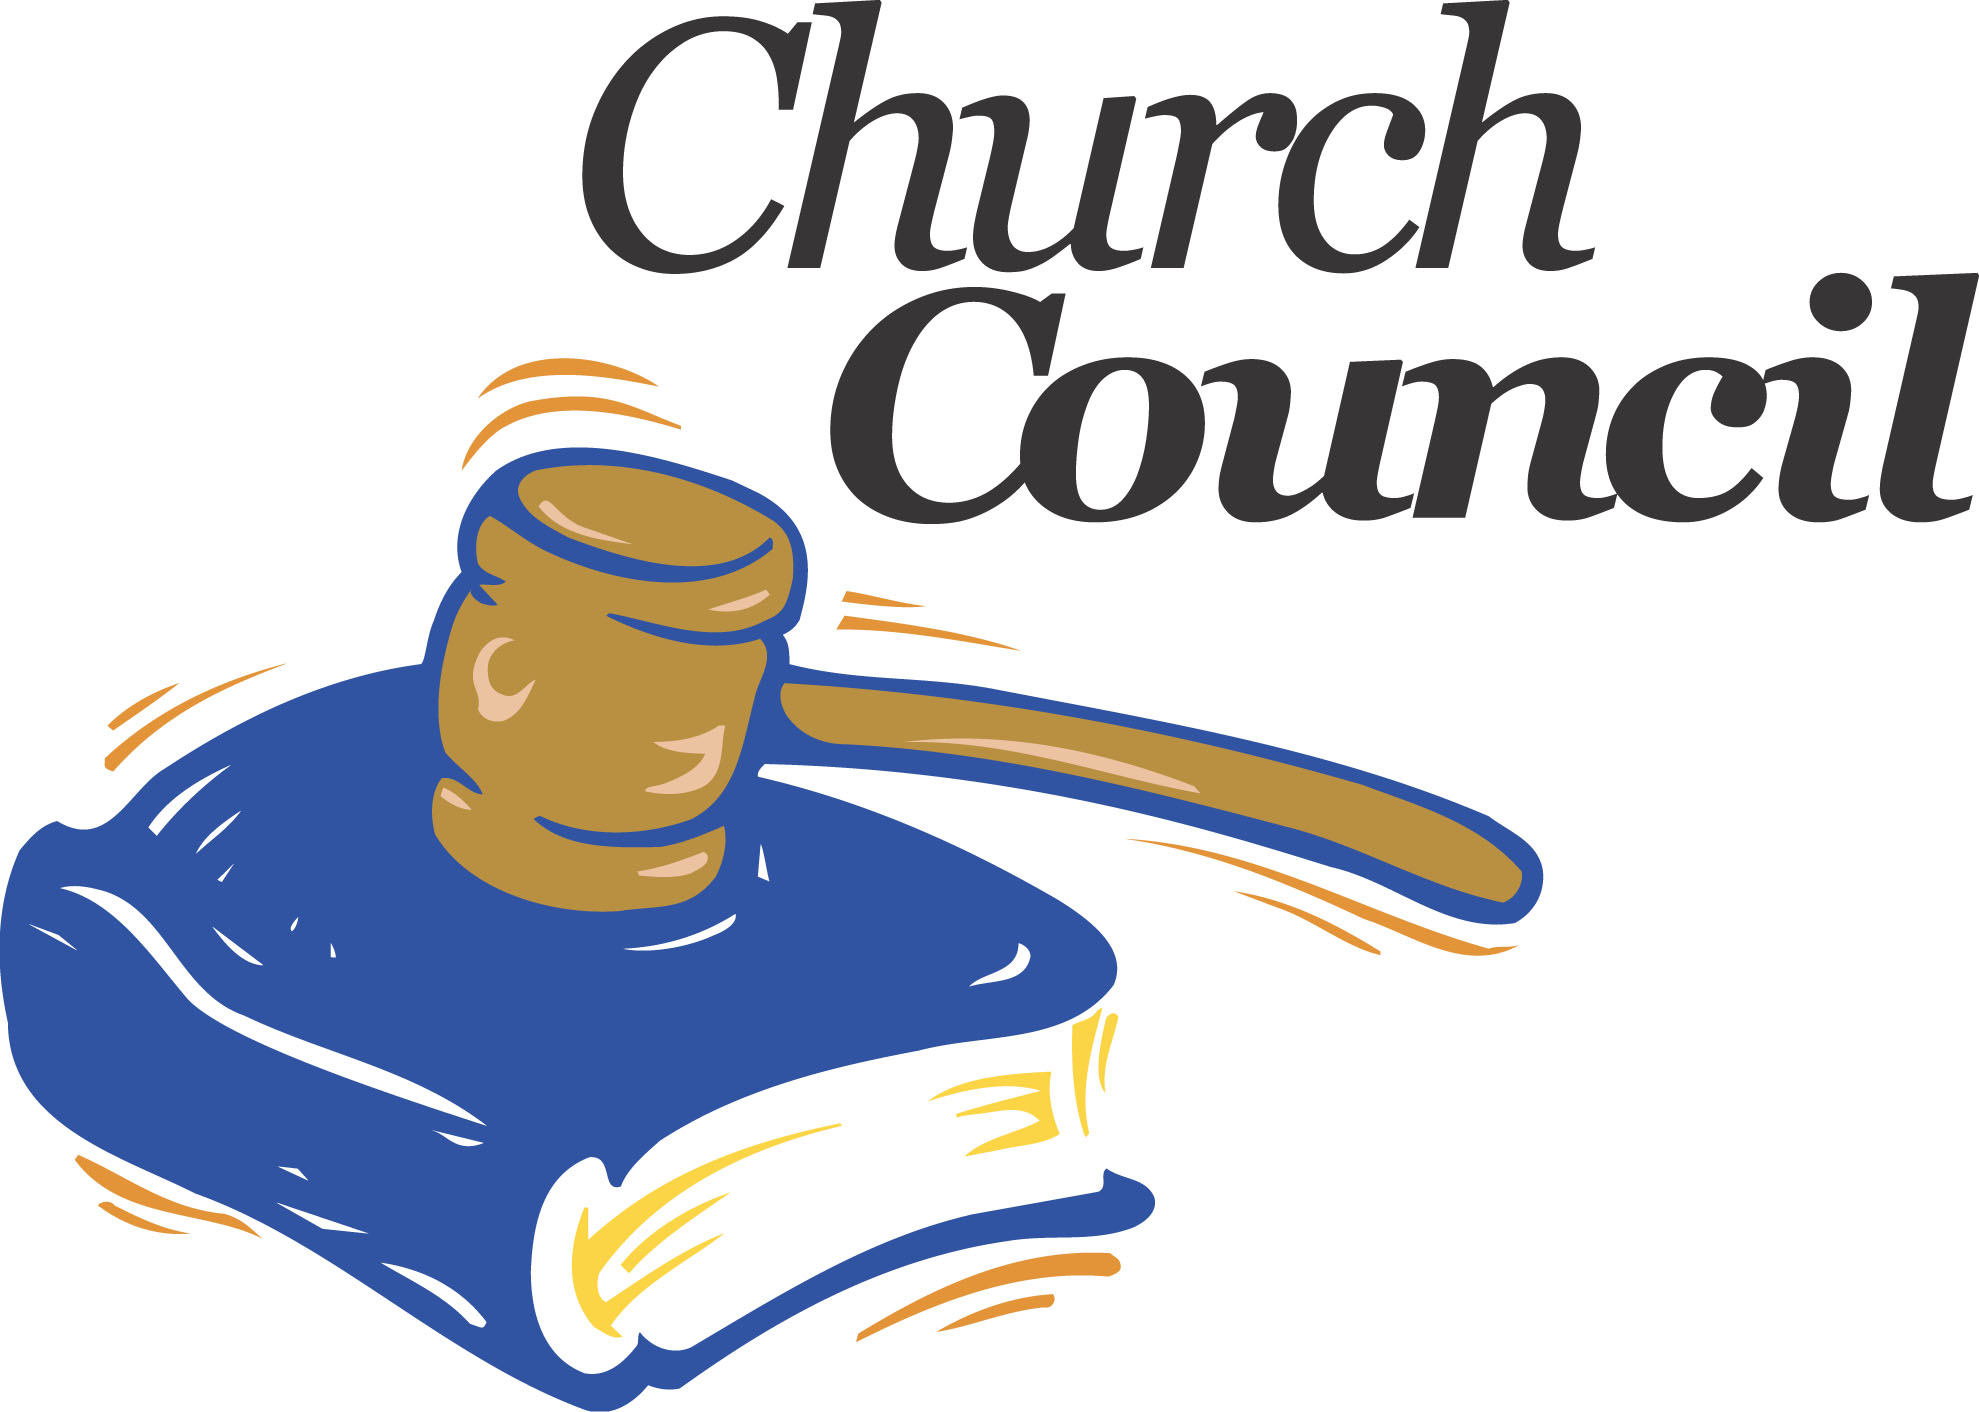 Church council meeting clipart